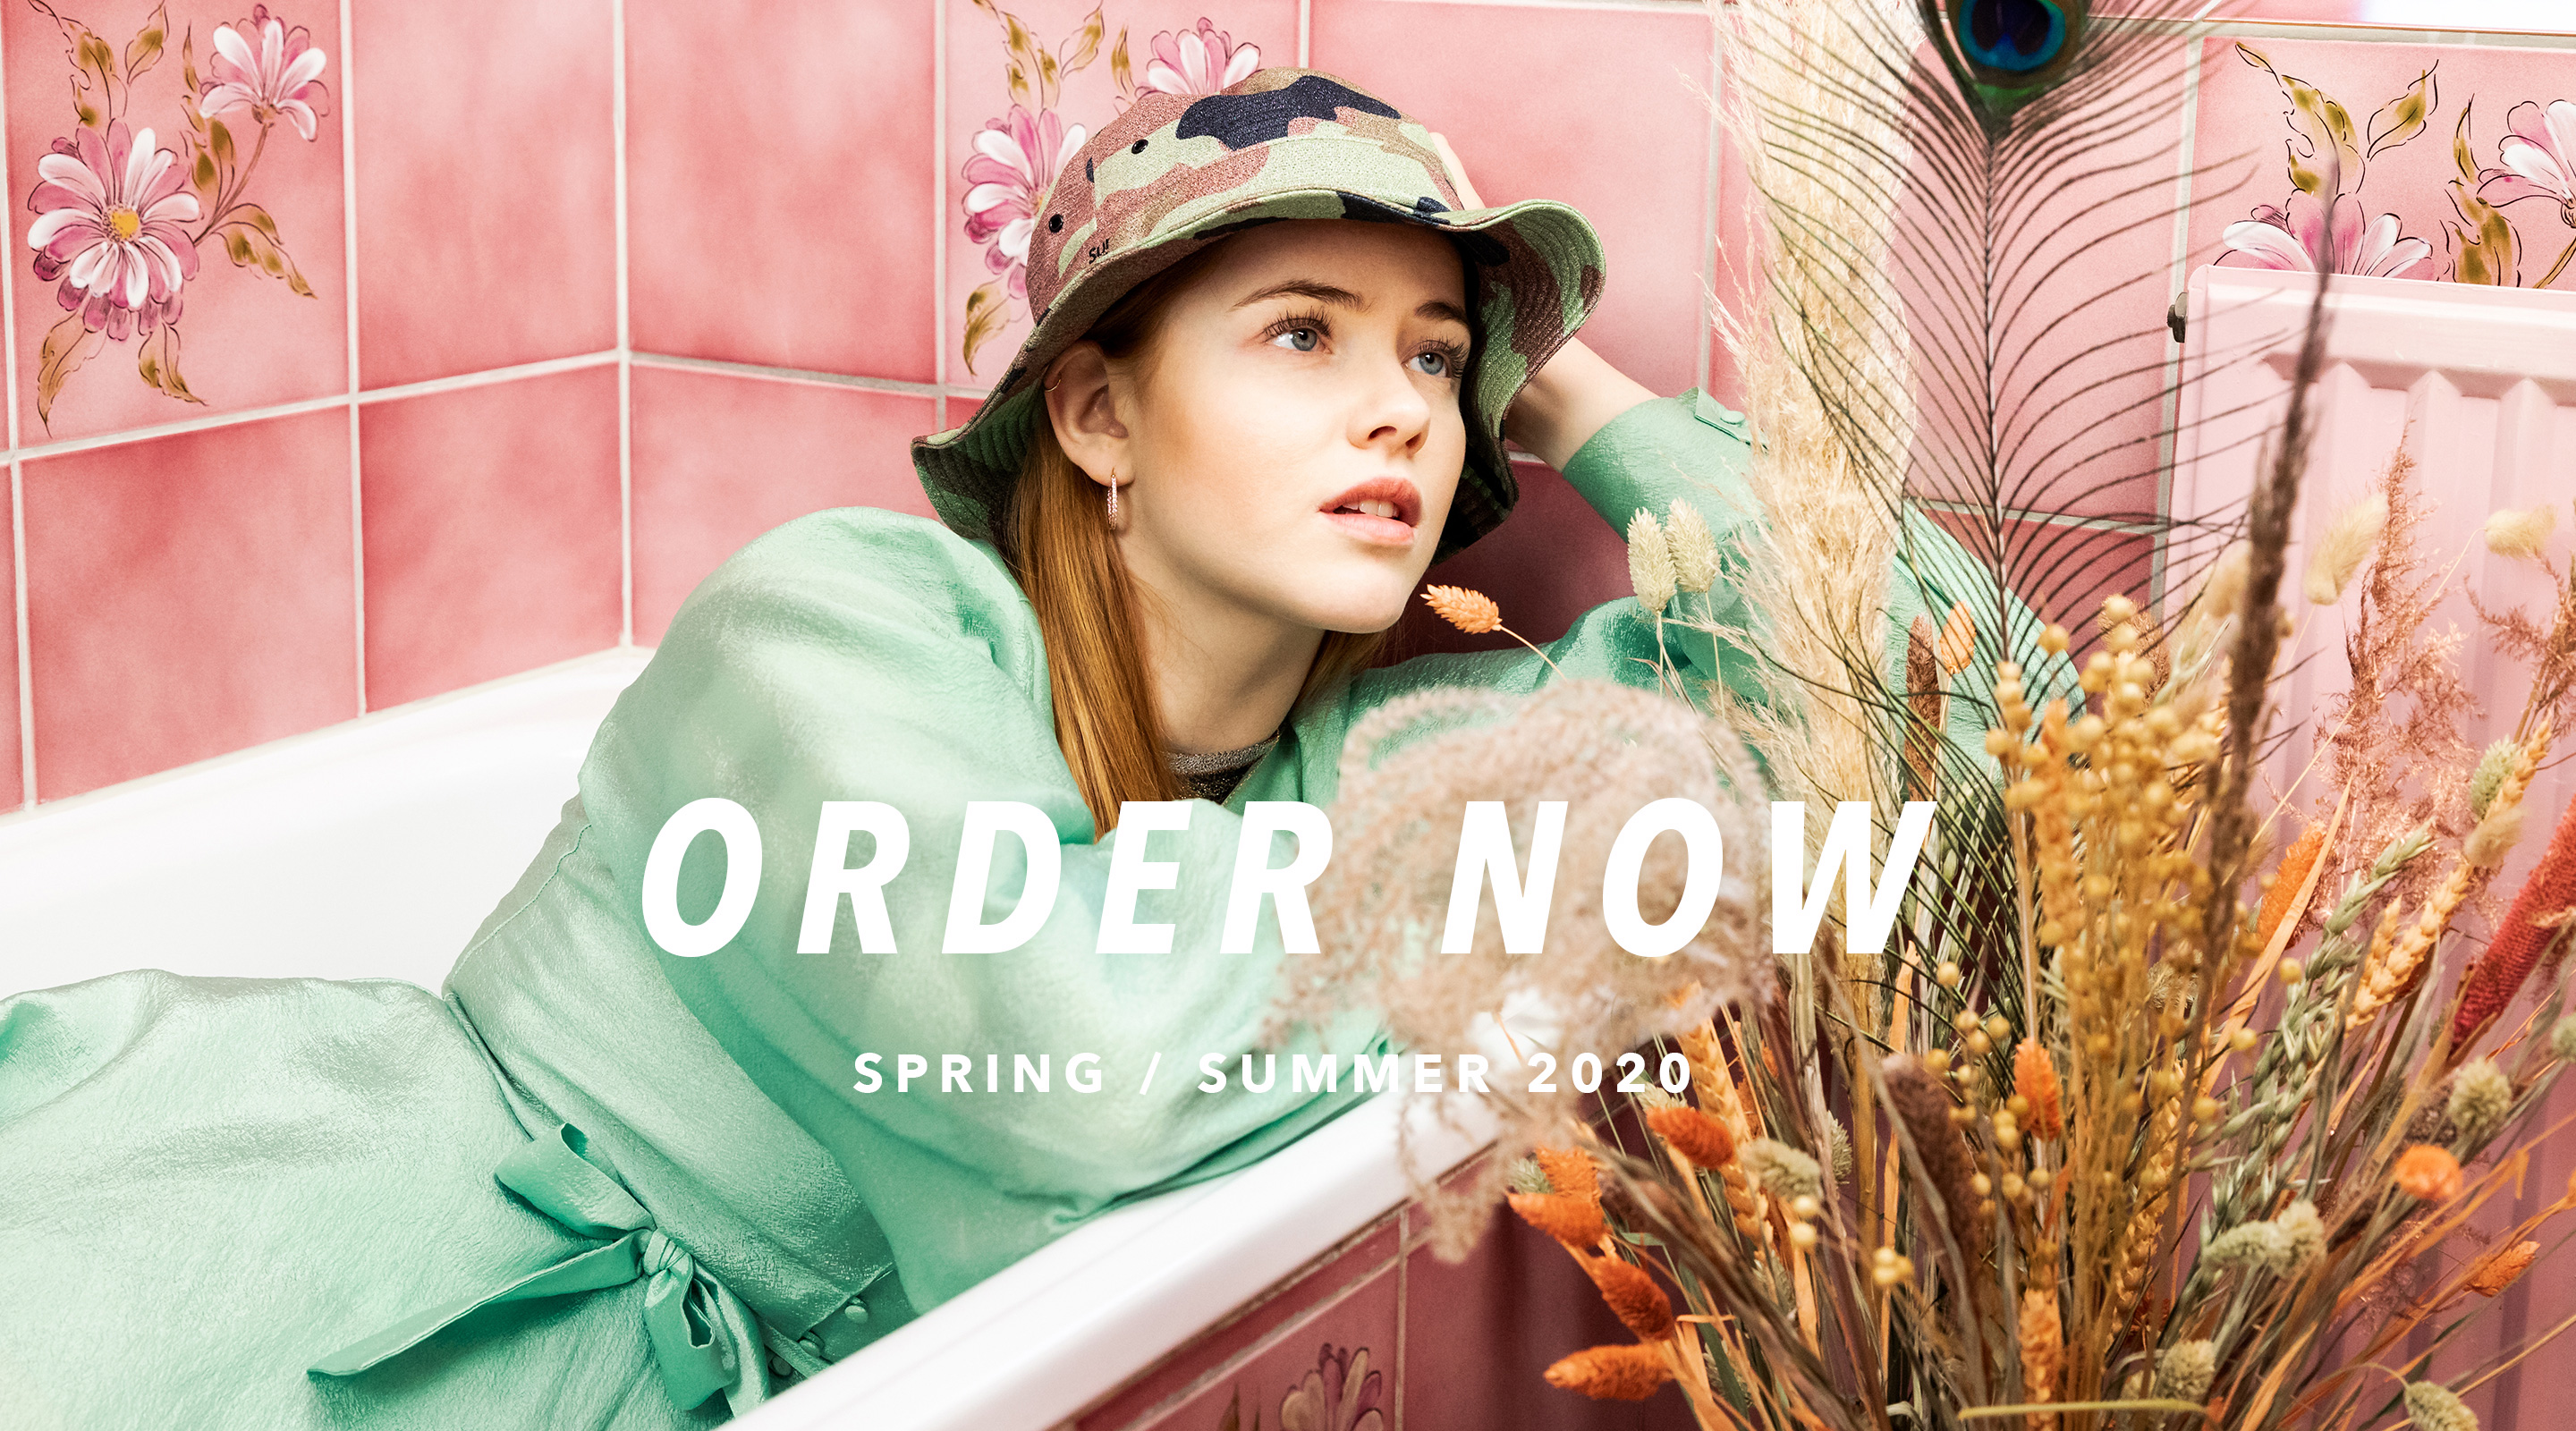 SA_do_you_remeber_spring_summer_2020_banner_order_now